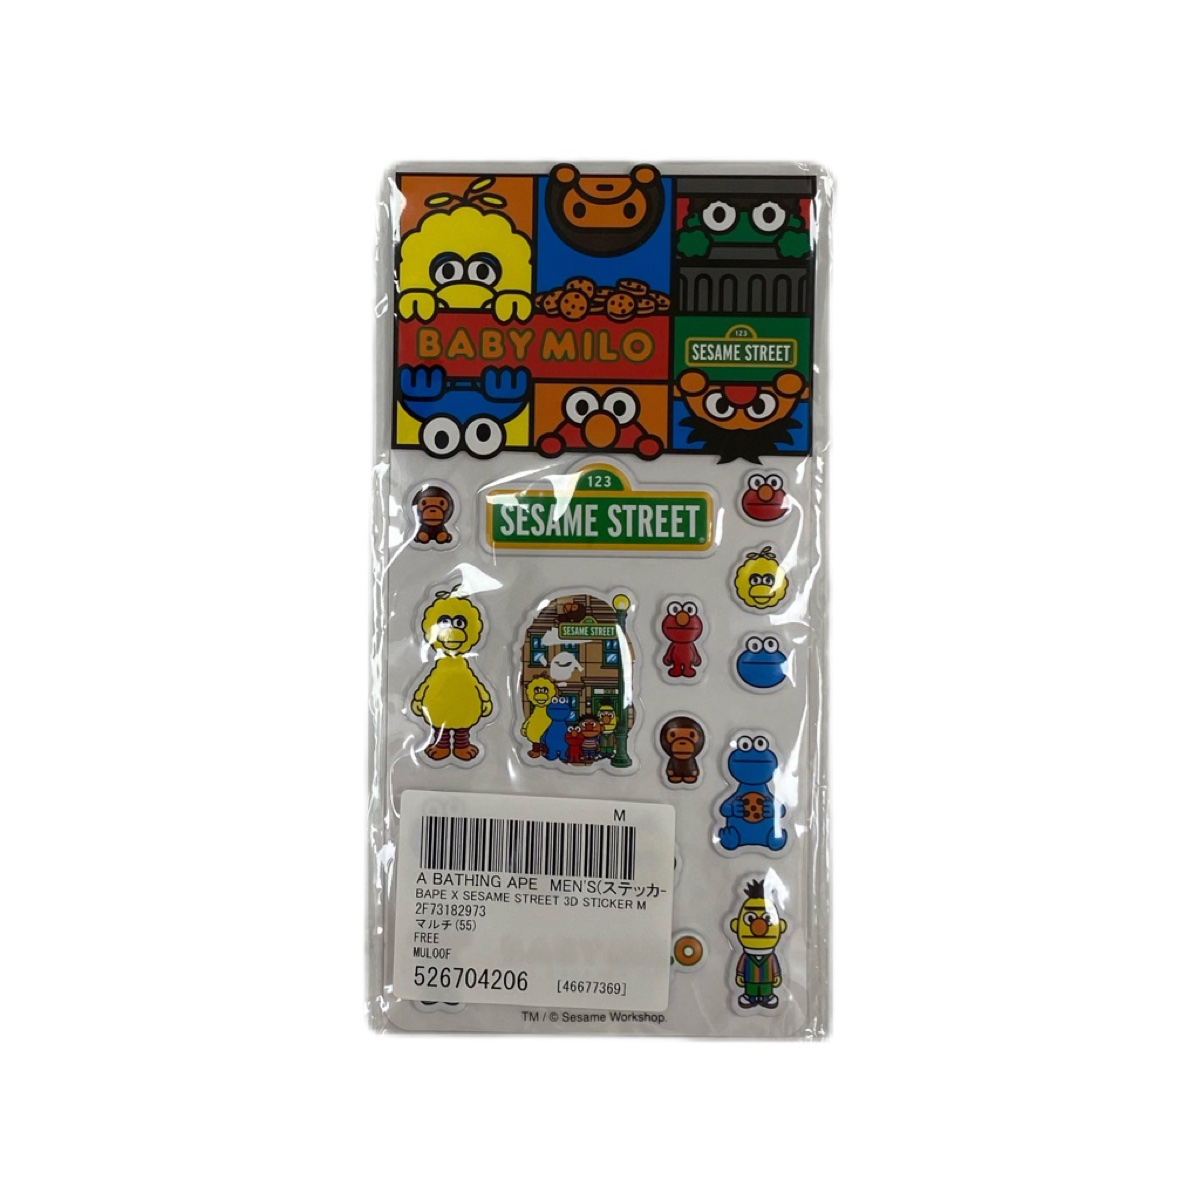 Authentic Bape x Sesame Street 3D sticker sheet brand new